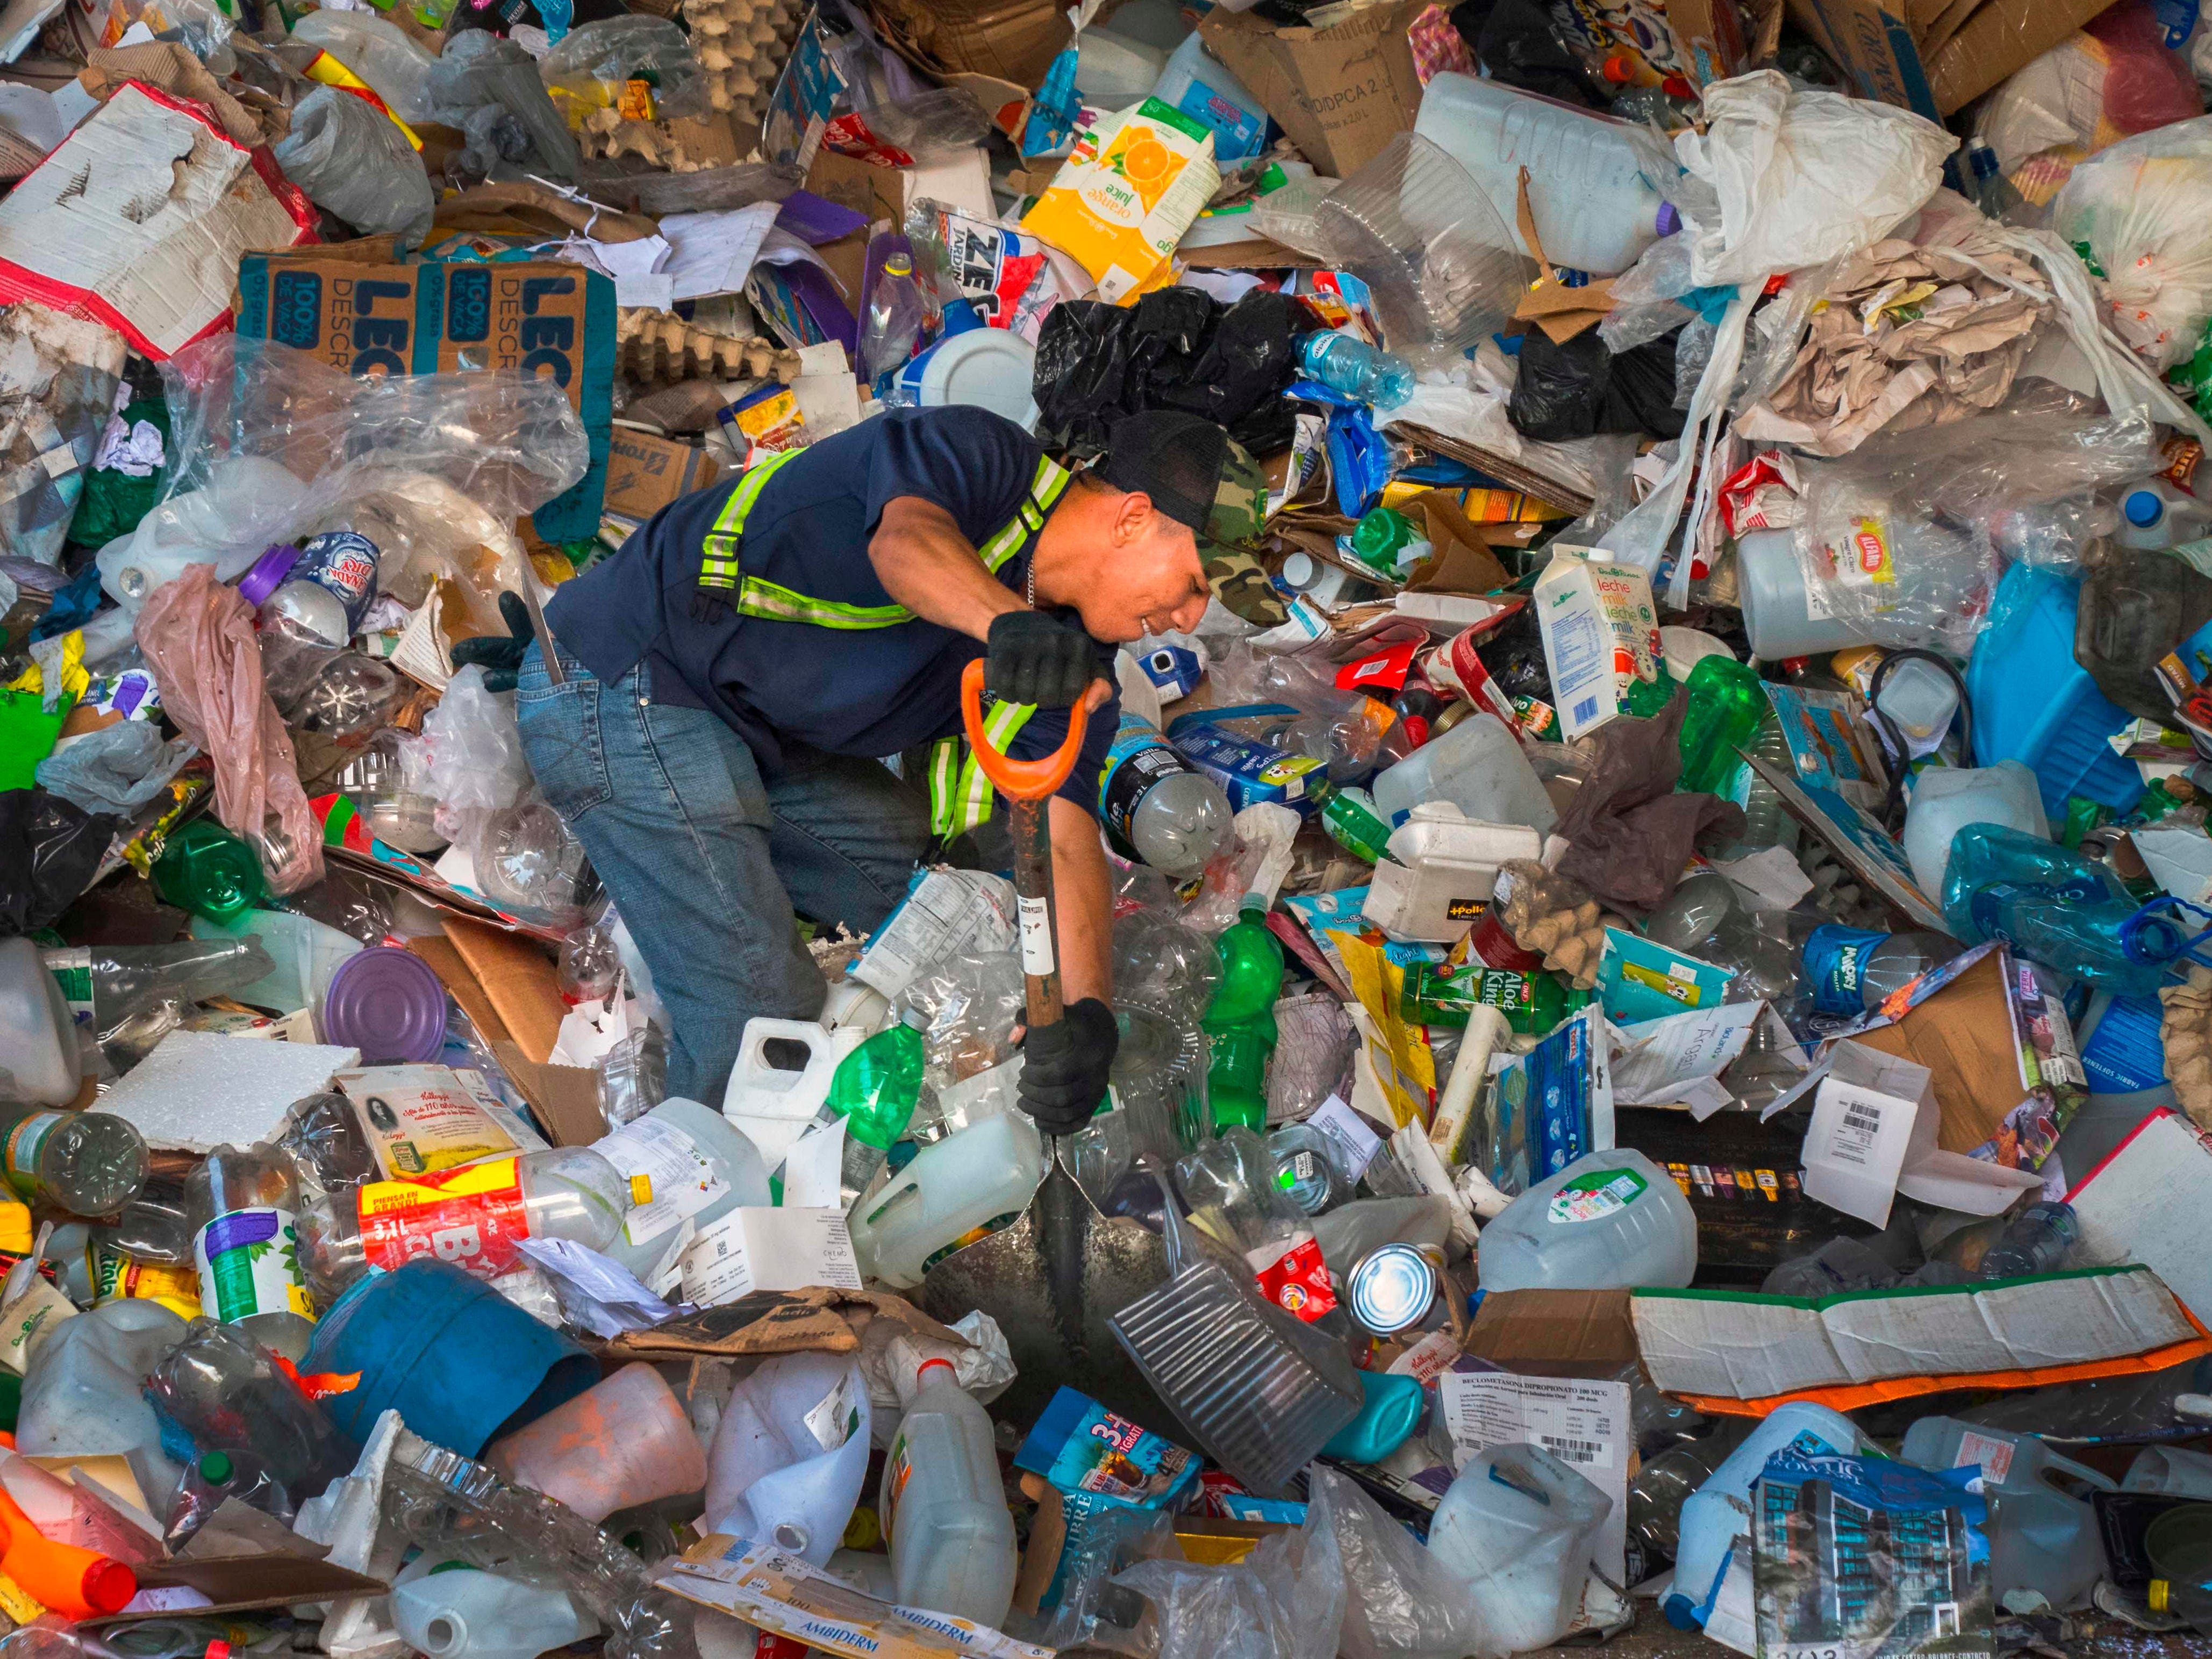 A worker arranges recyclable waste at La Sylvia recycling center in Barva,  Costa Rica on June 20, 2018.